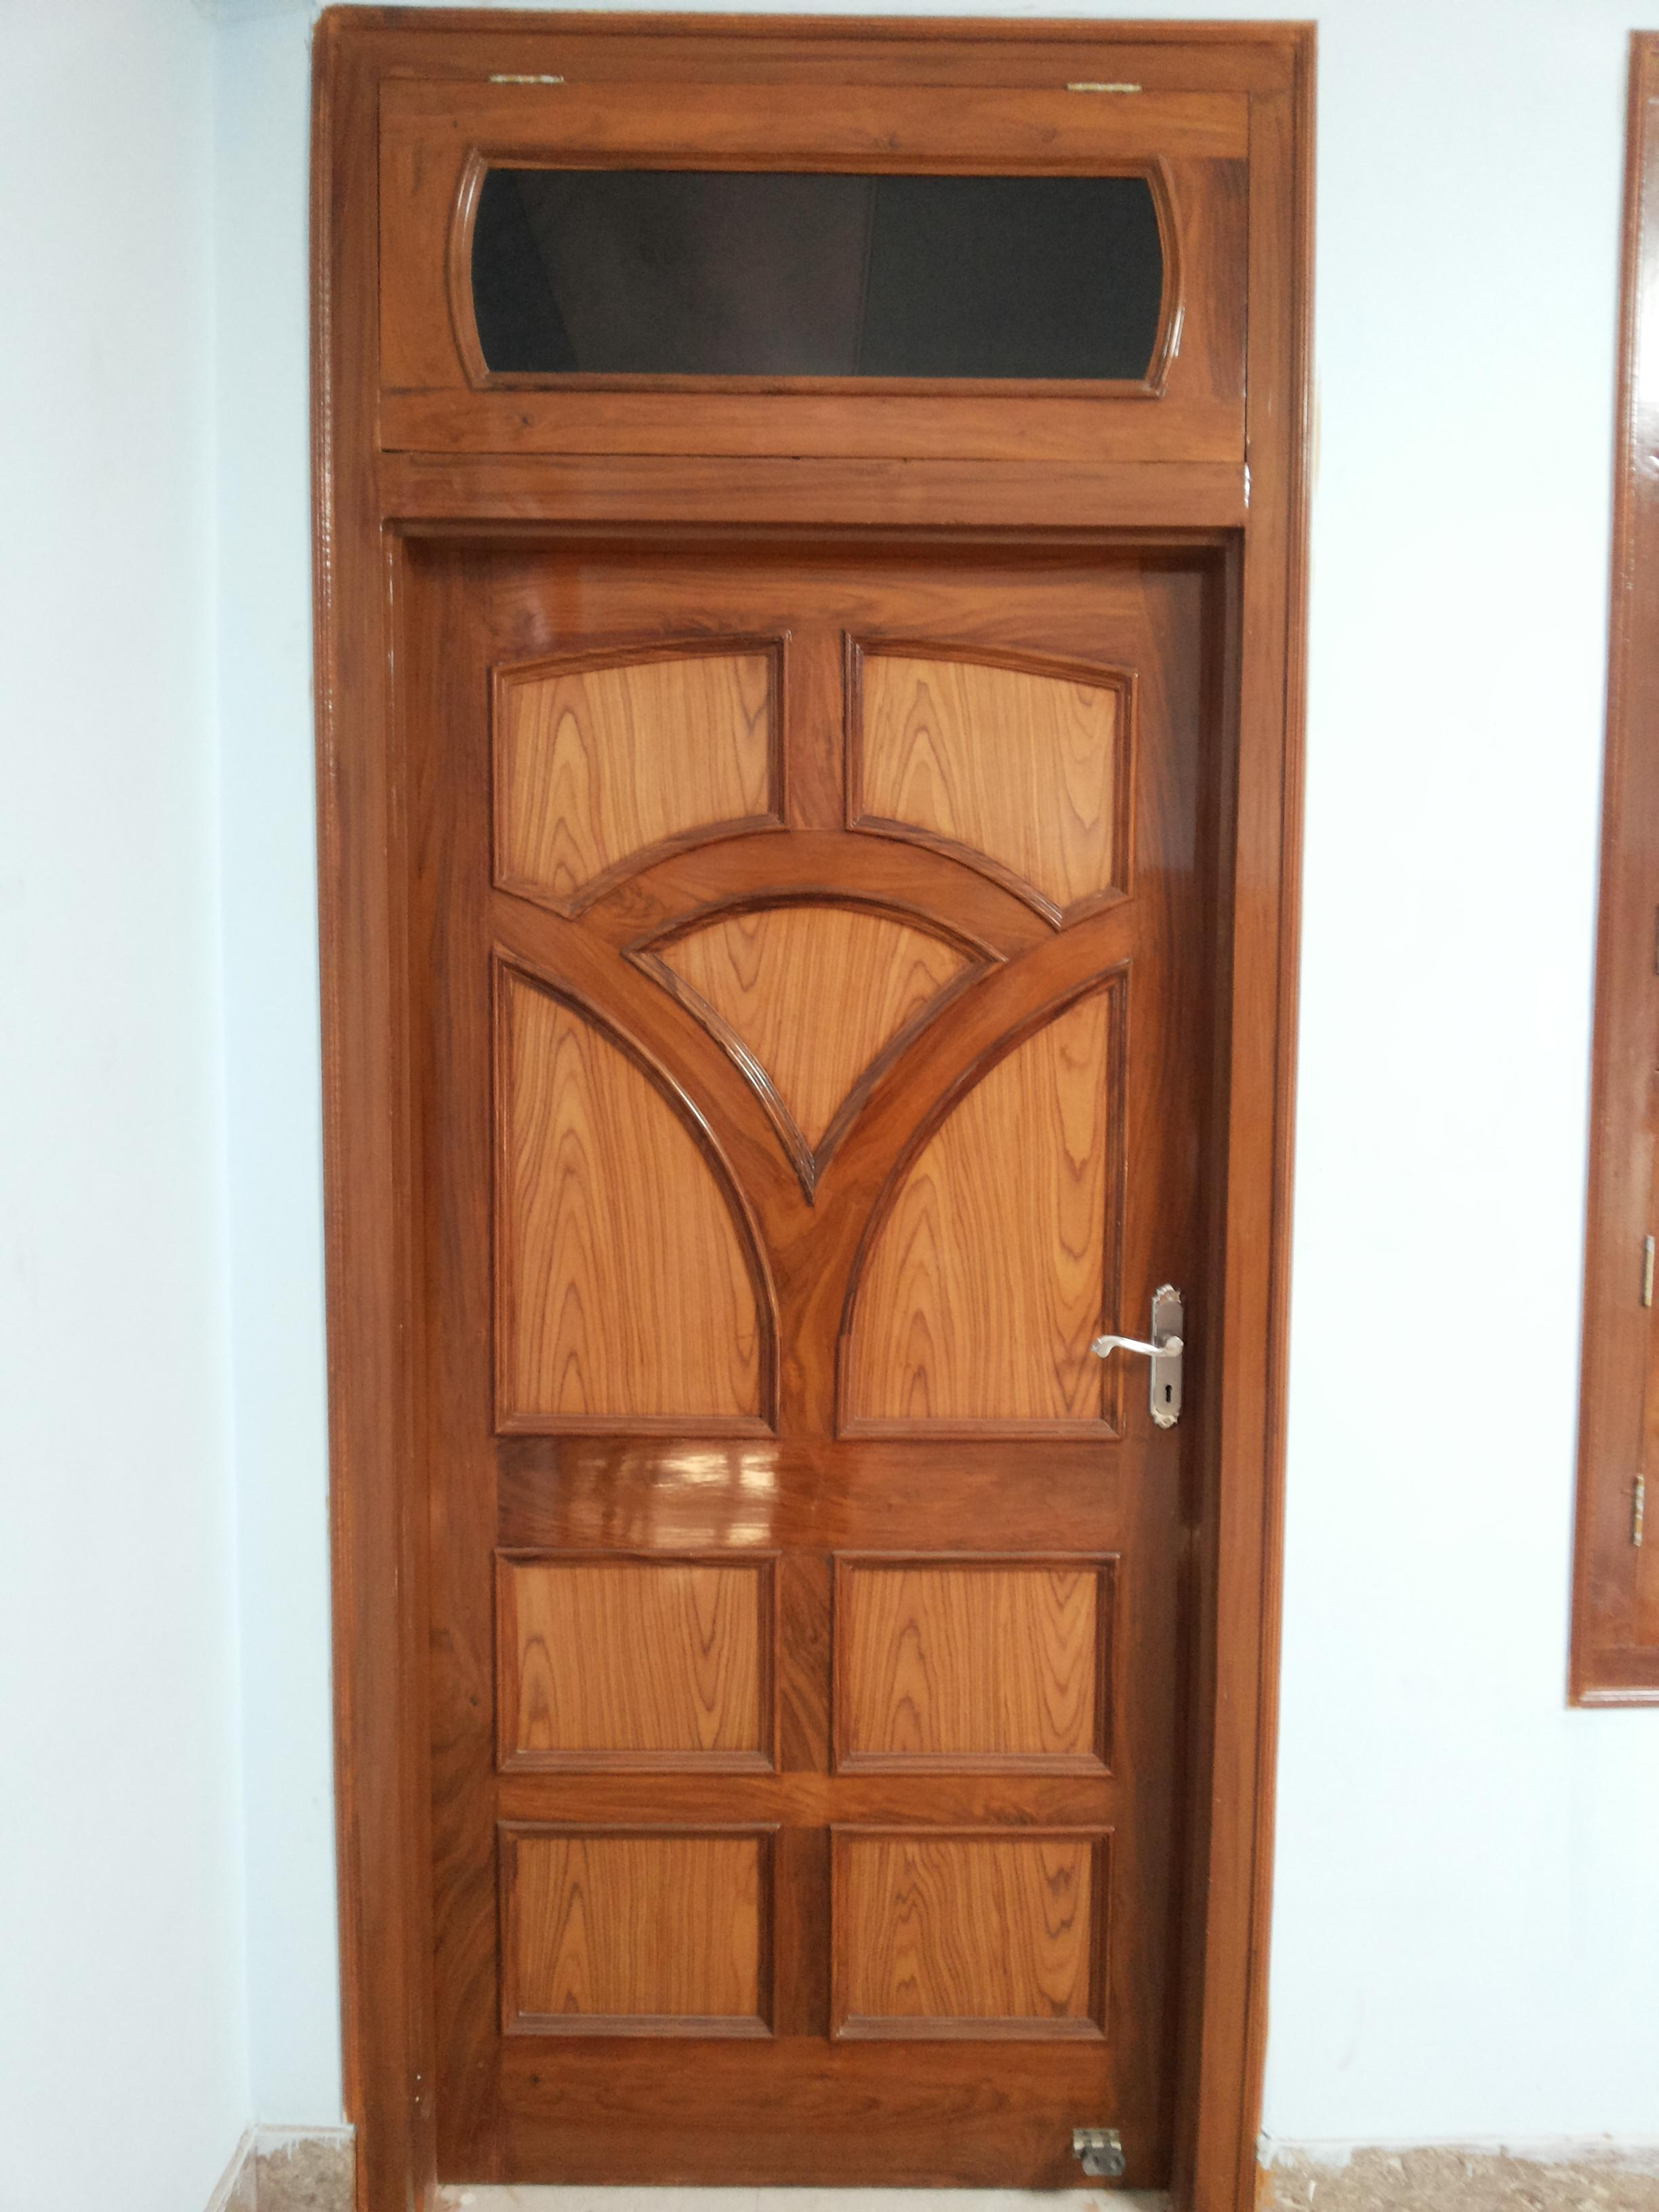 Single panel interior wood door design gharexpert for Modern single door designs for houses